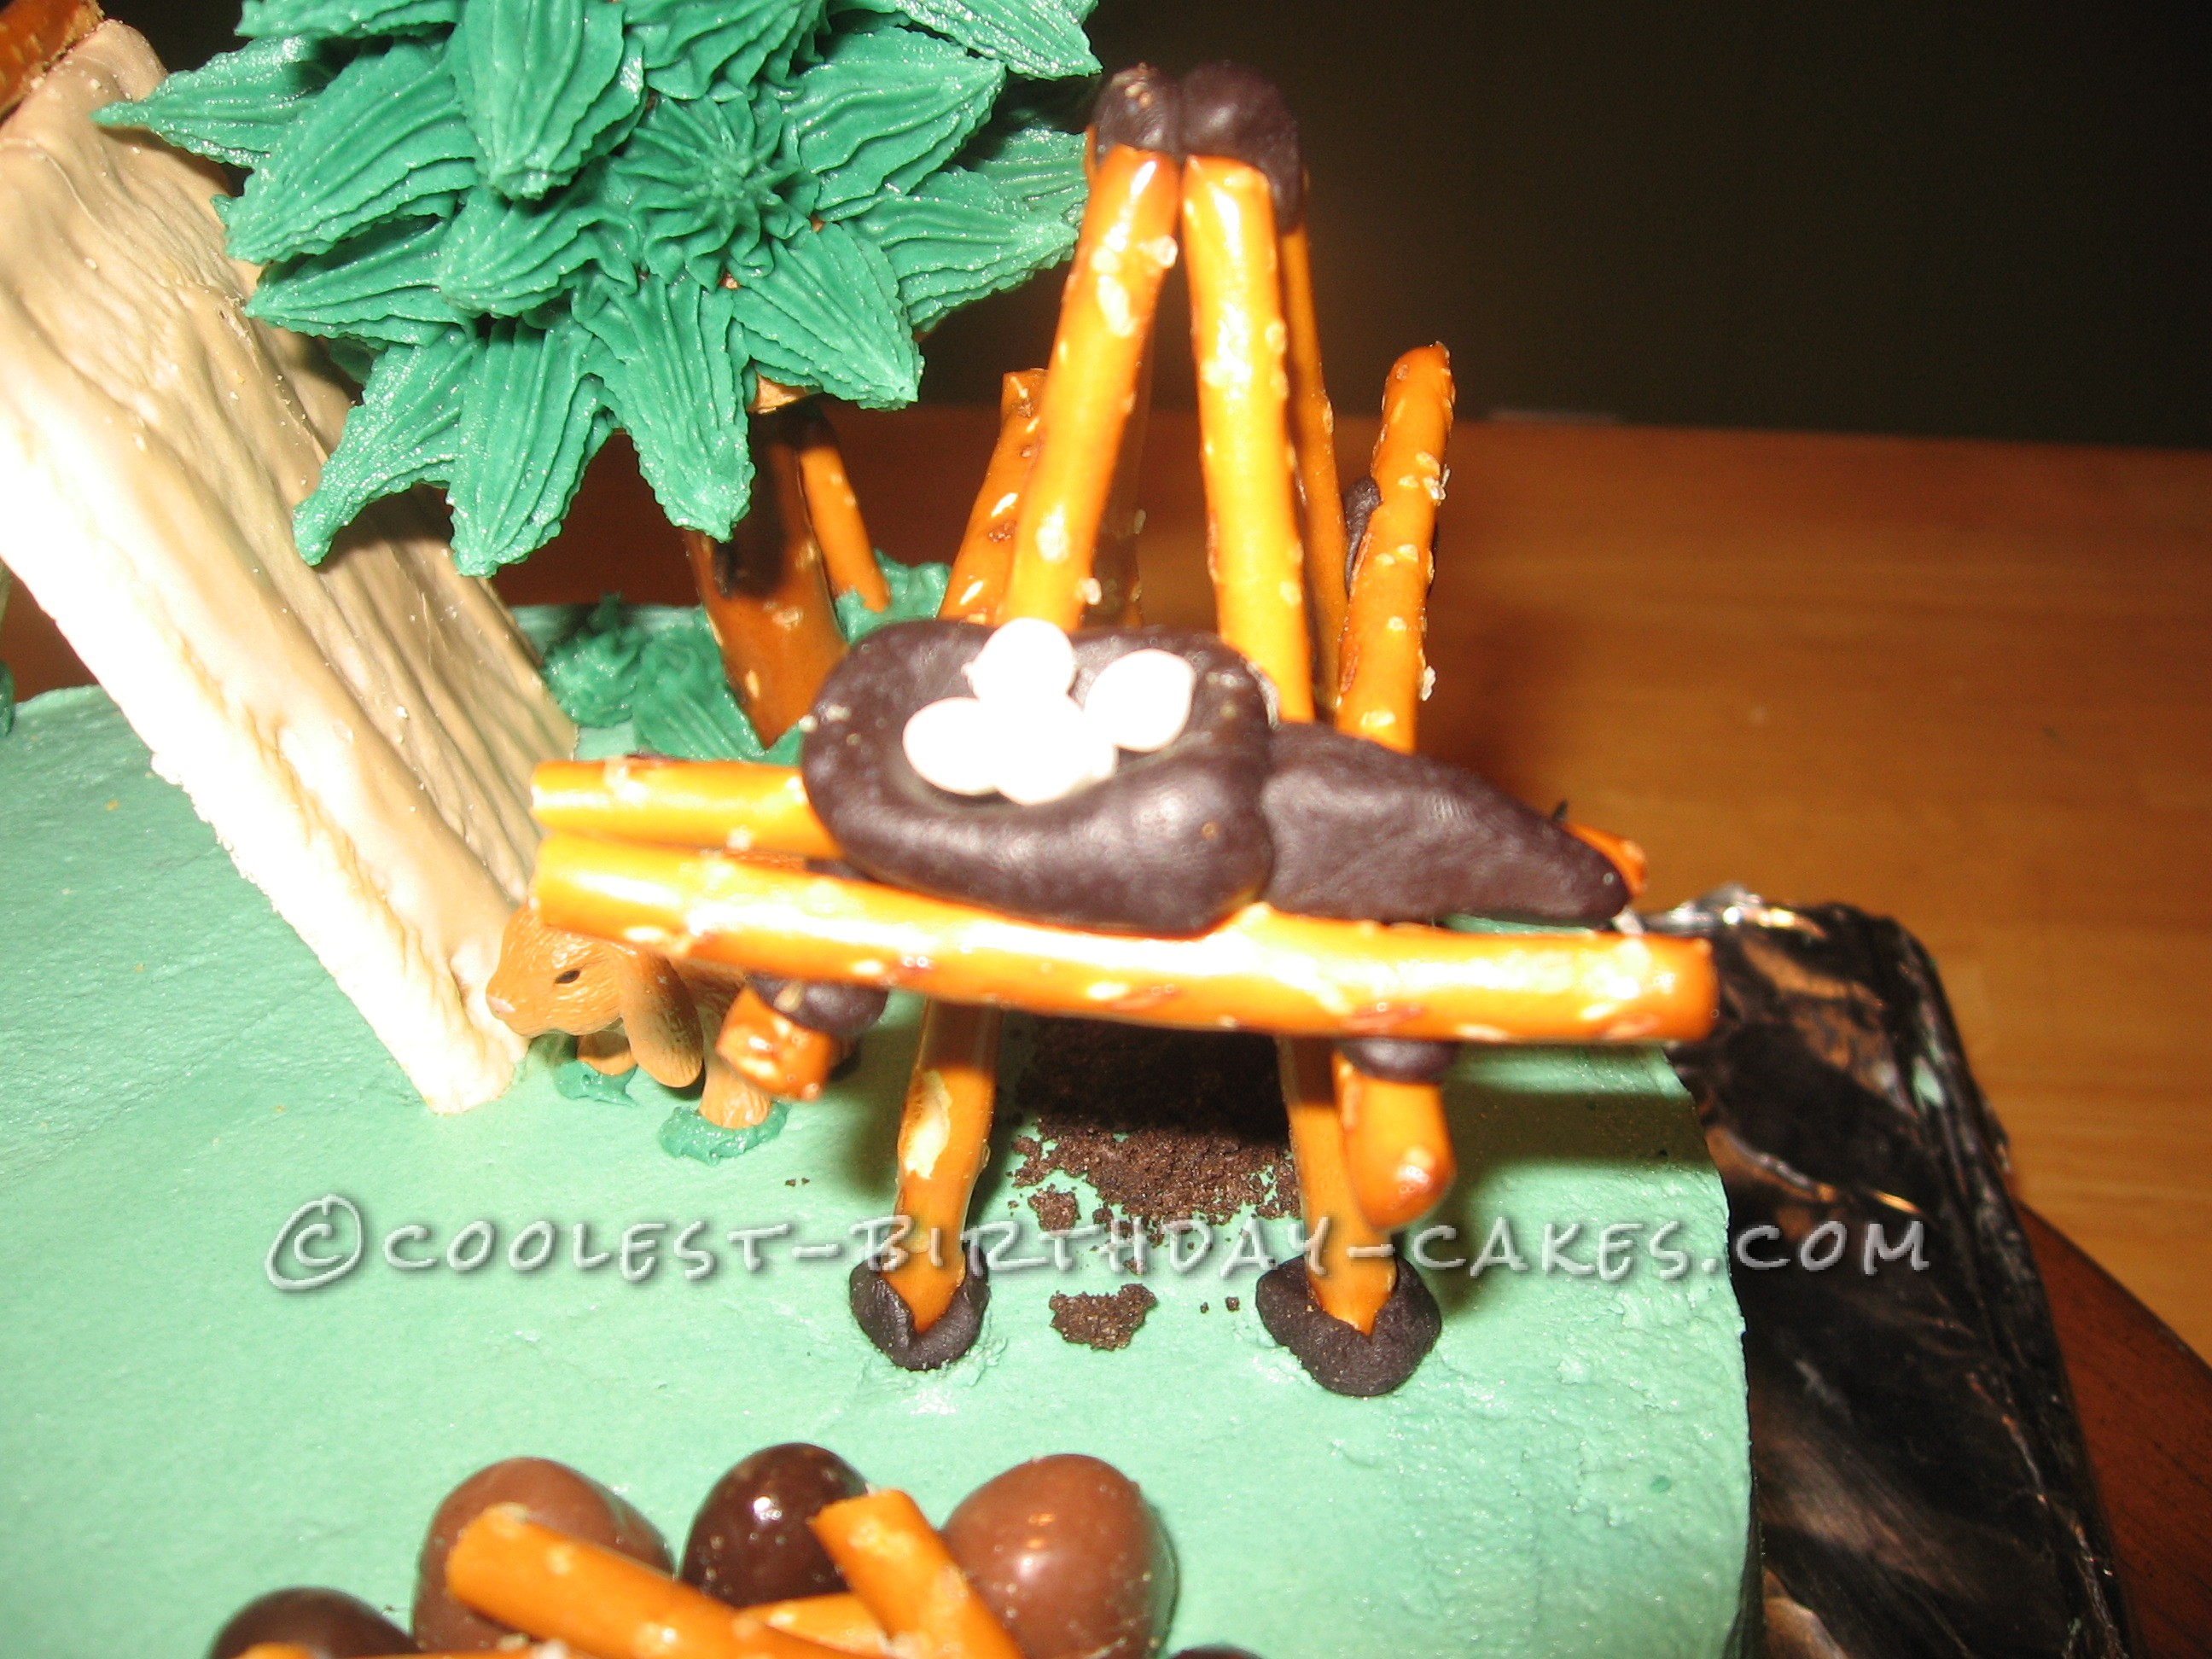 You-Can-Do-It Camping Cake